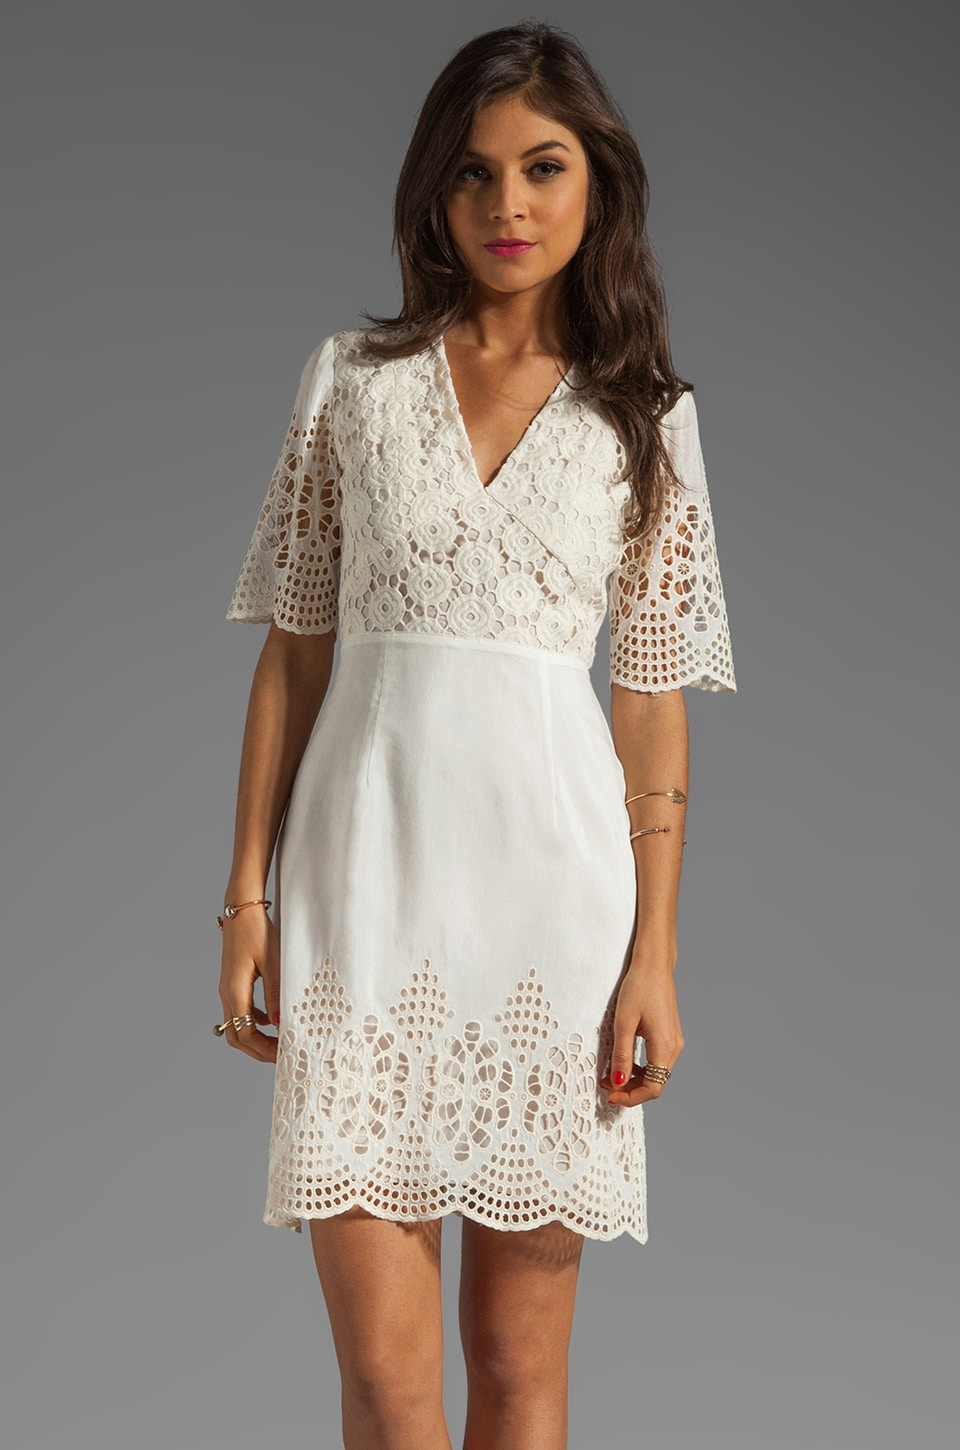 Anna Sui Bohemian Eyelet Embroidered Short Sleeve Dress in Cream